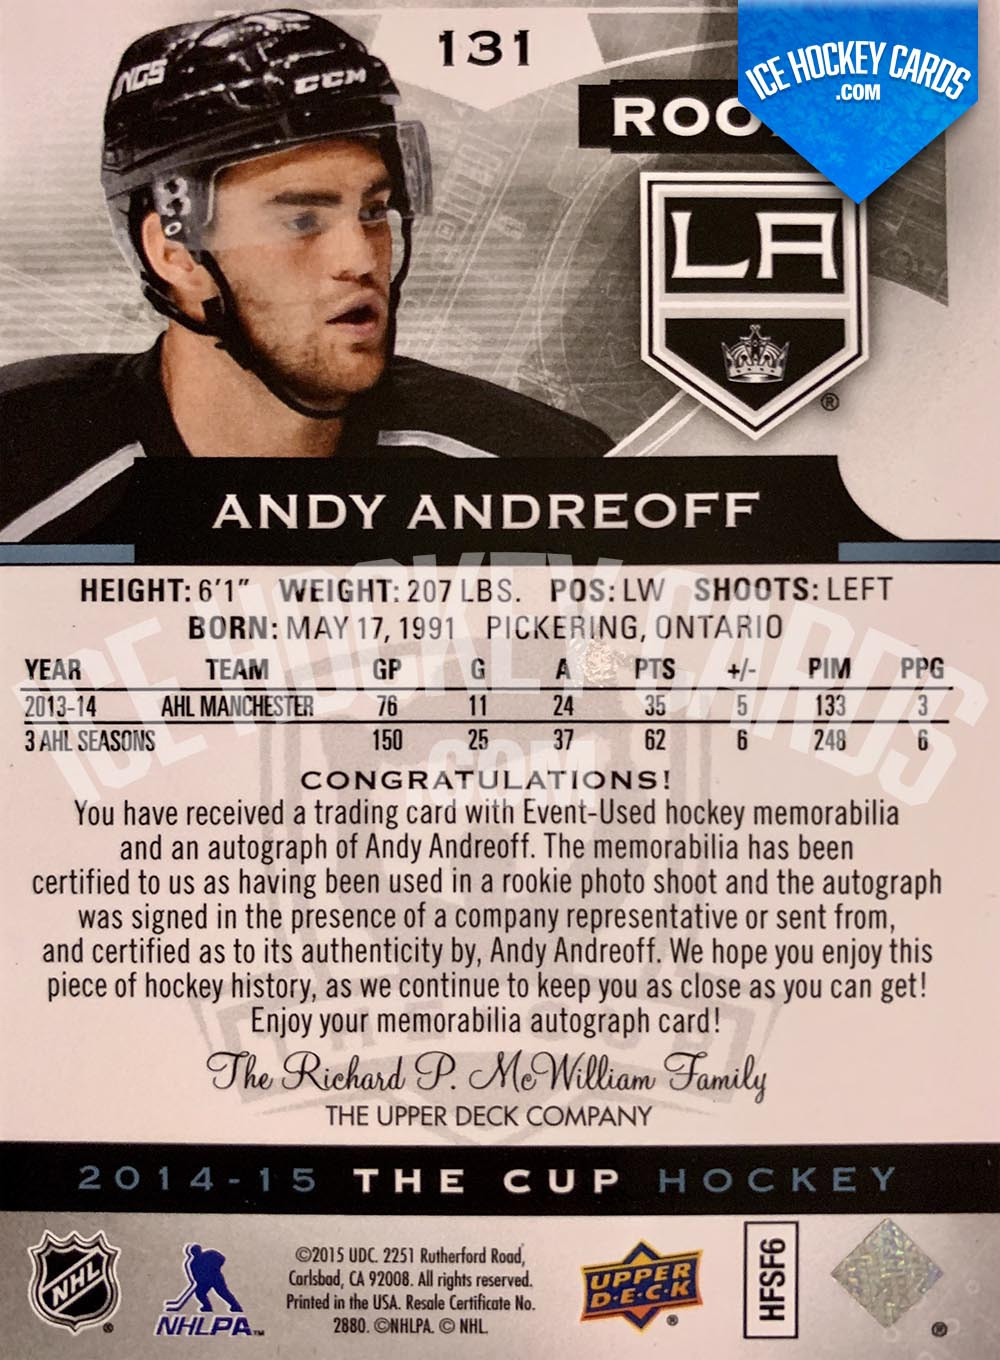 Upper Deck - The Cup 2014-15 - Andy Andreoff Rookie Auto Patch RC back